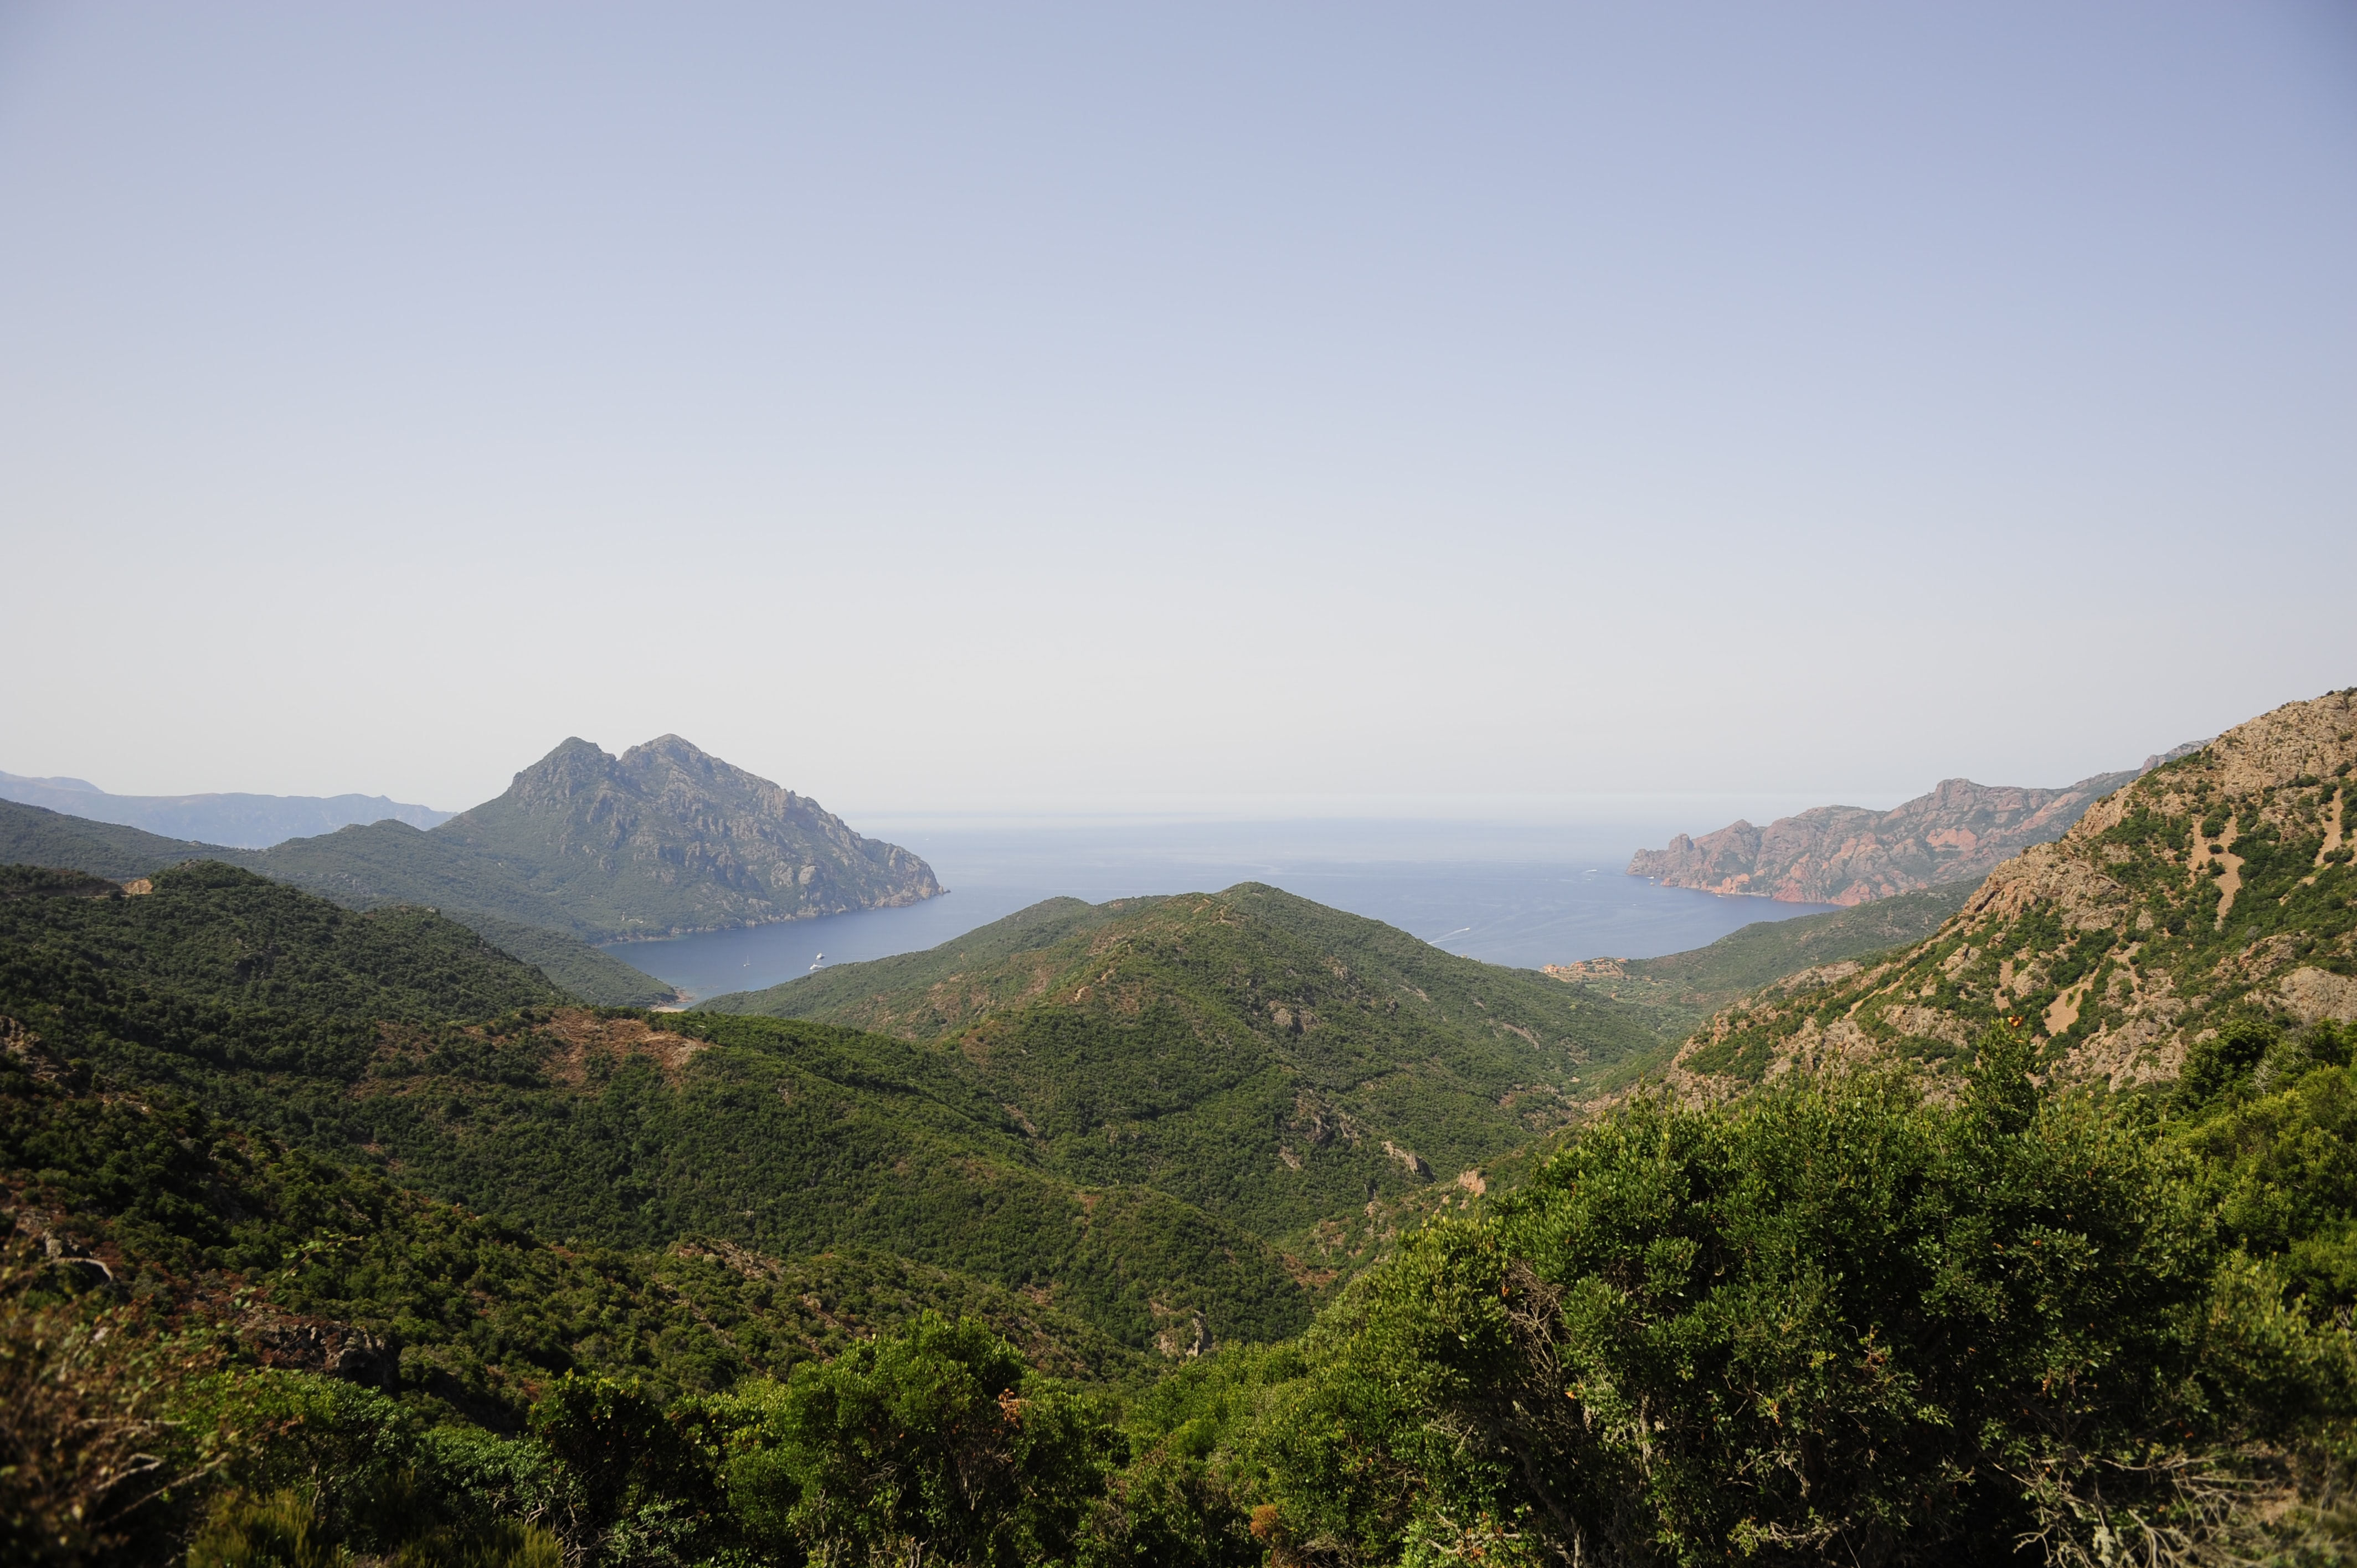 Hills covered with green shrubs along the blue coast